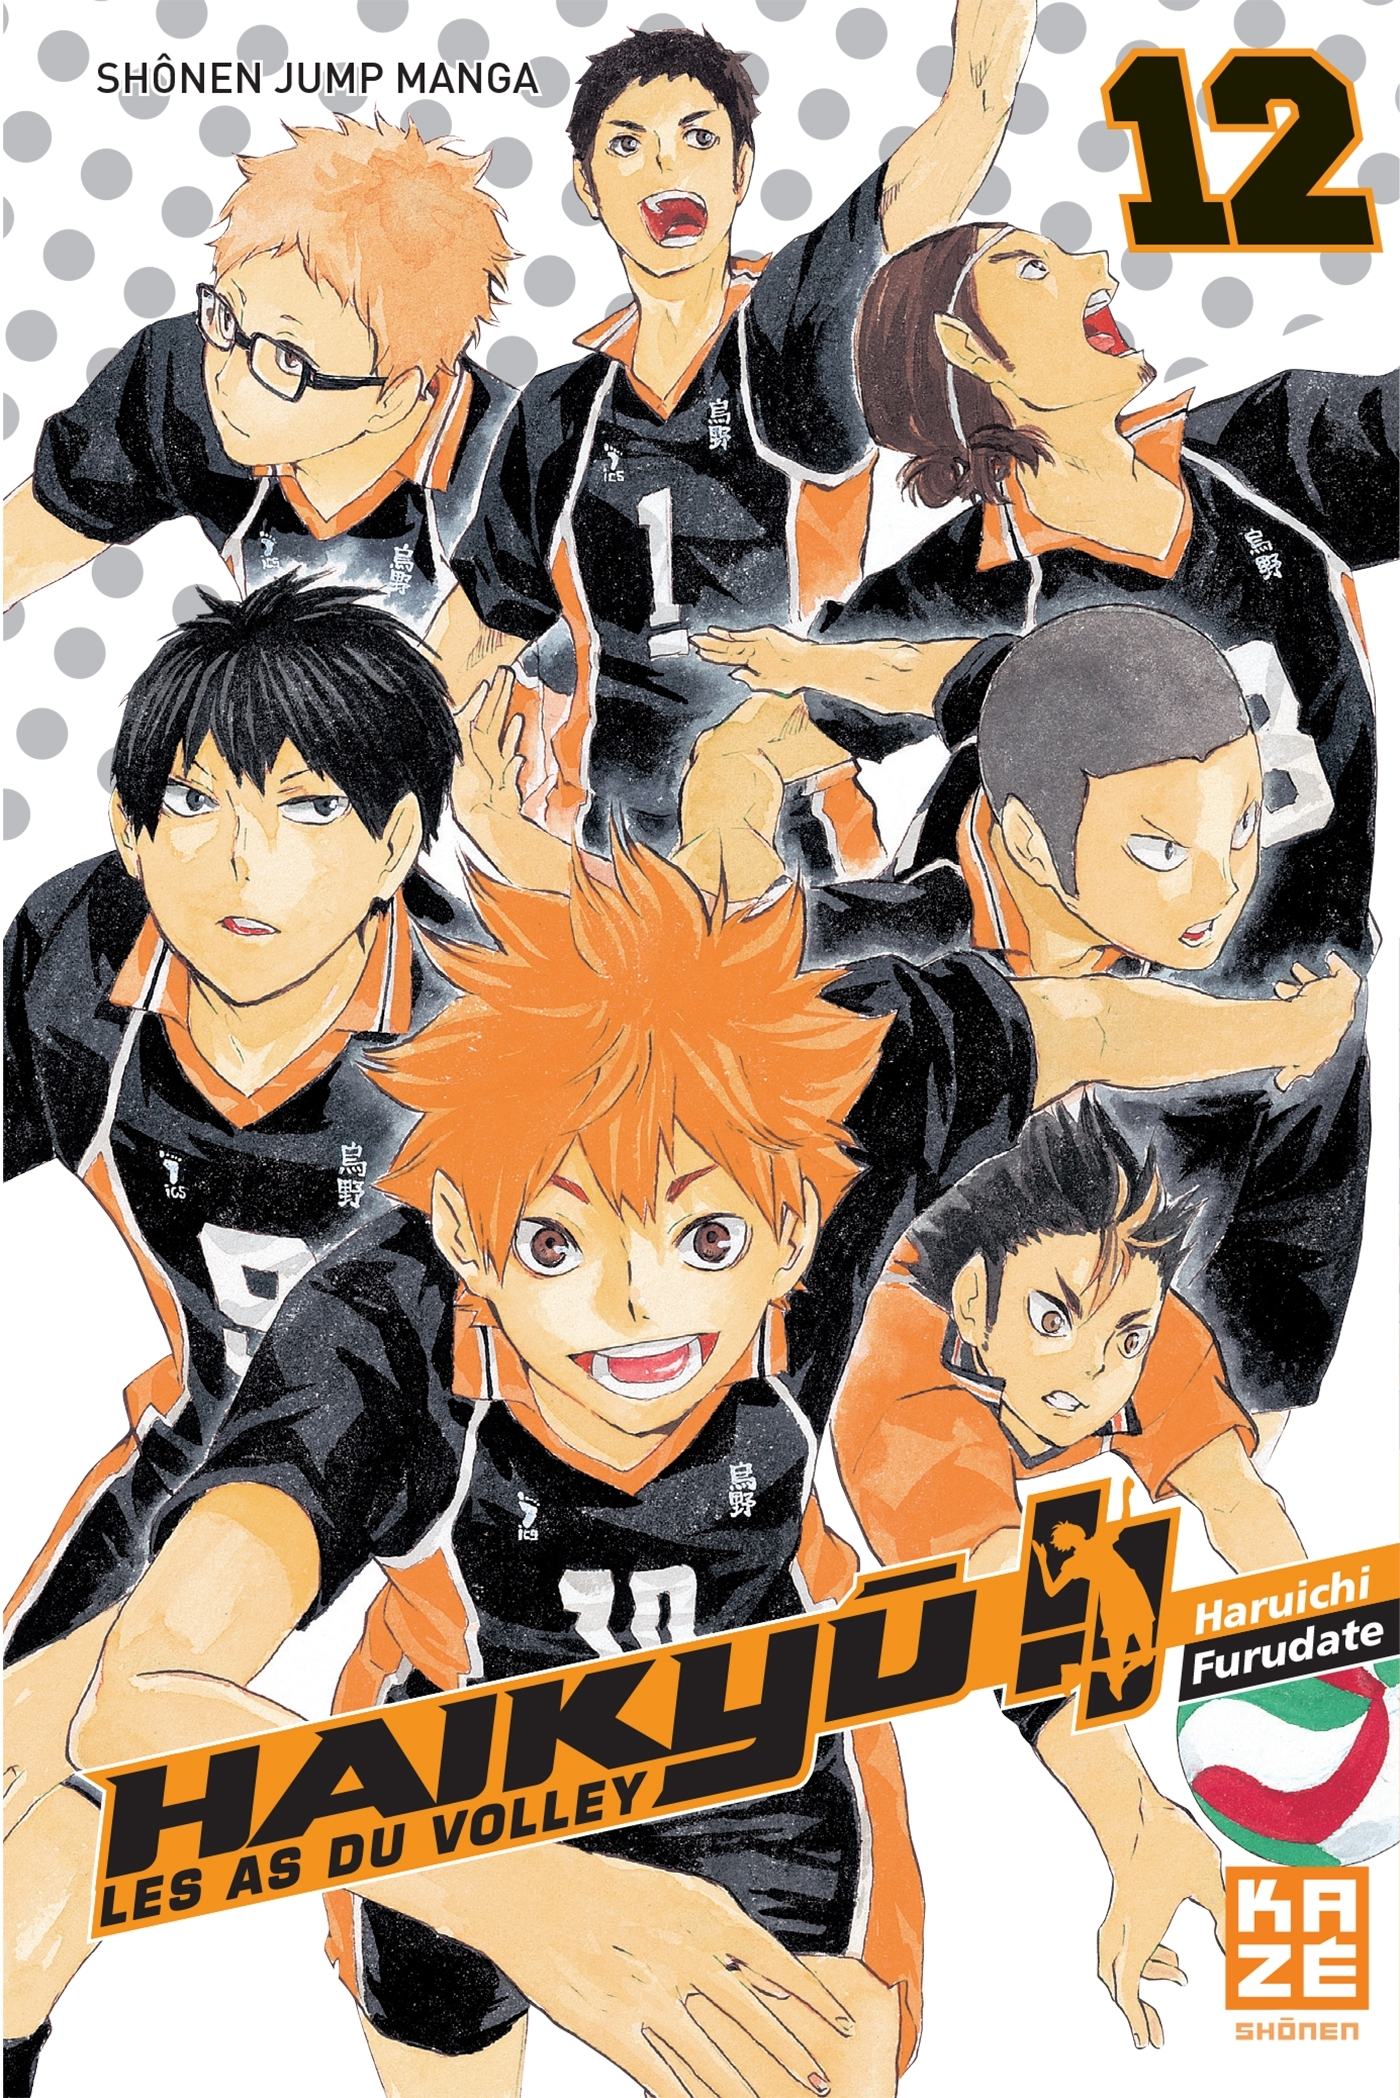 HAIKYU !! - LES AS DU VOLLEY T12